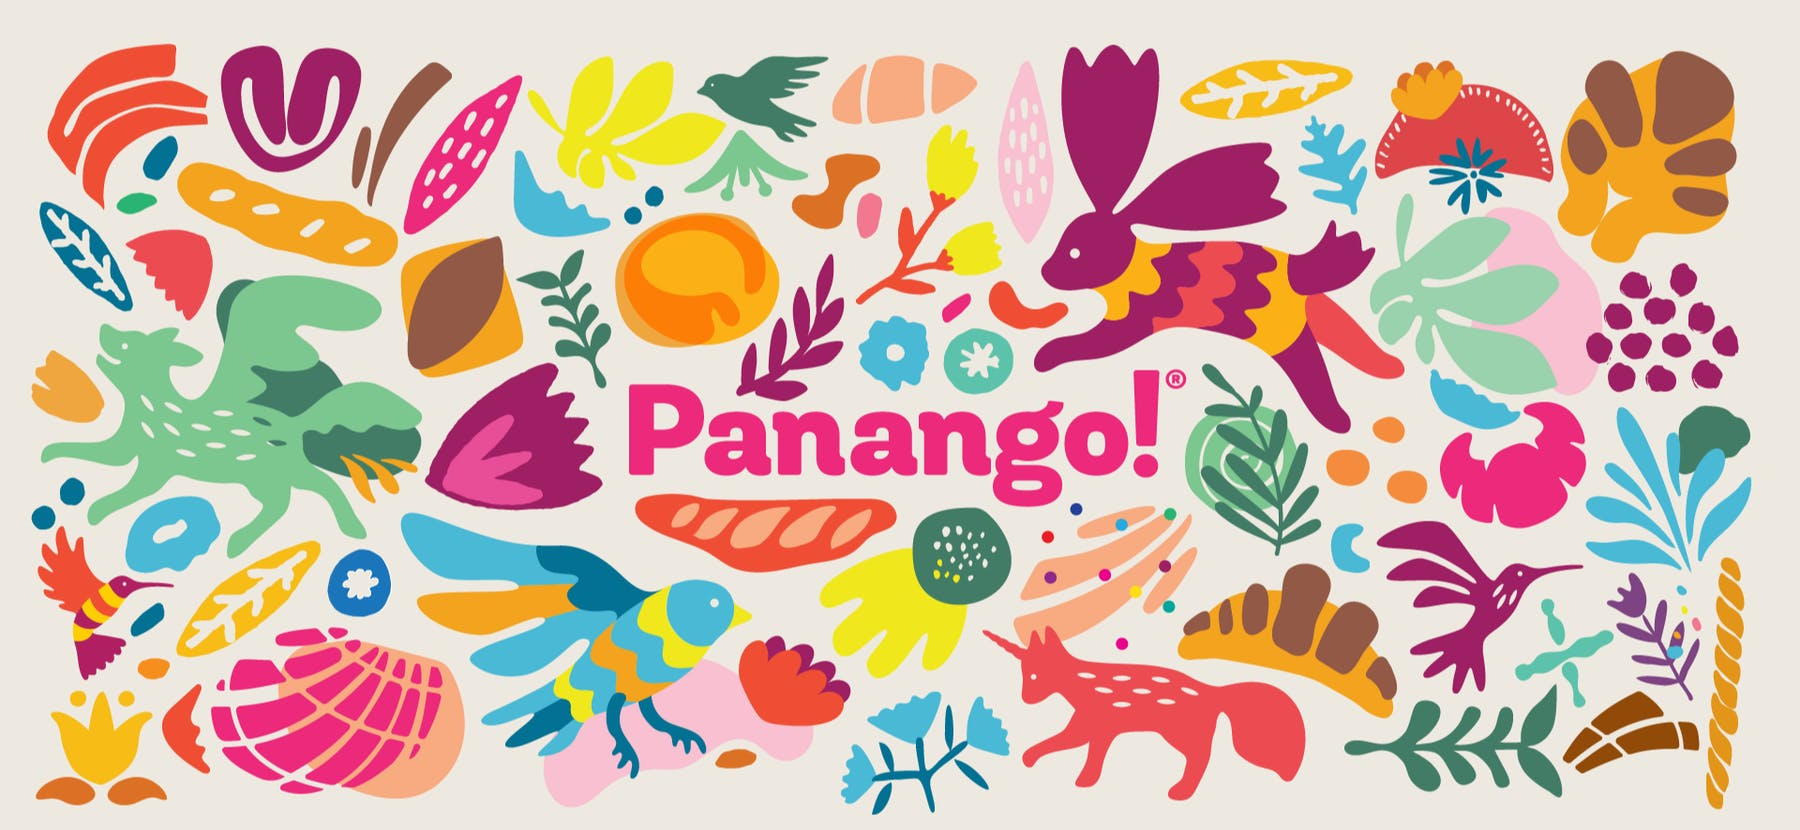 panago colorful artwork